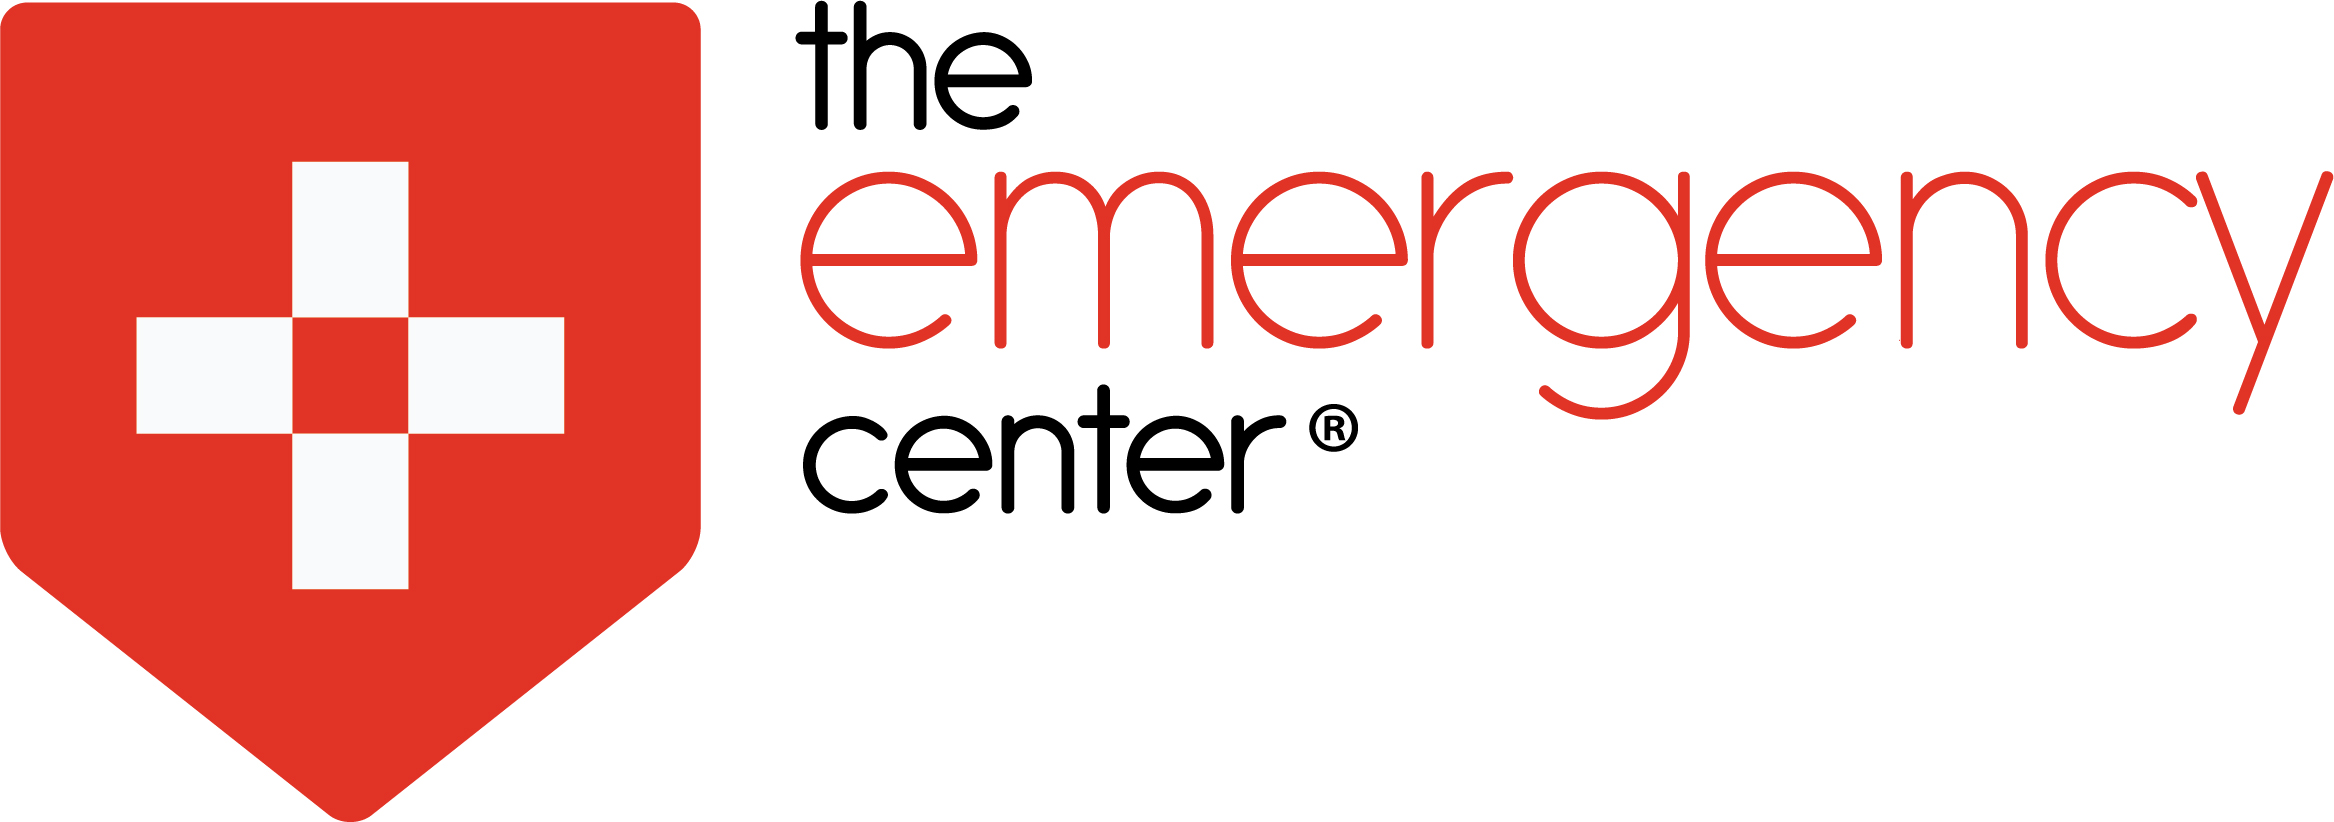 The Emergency Center Announces Grand Opening in San